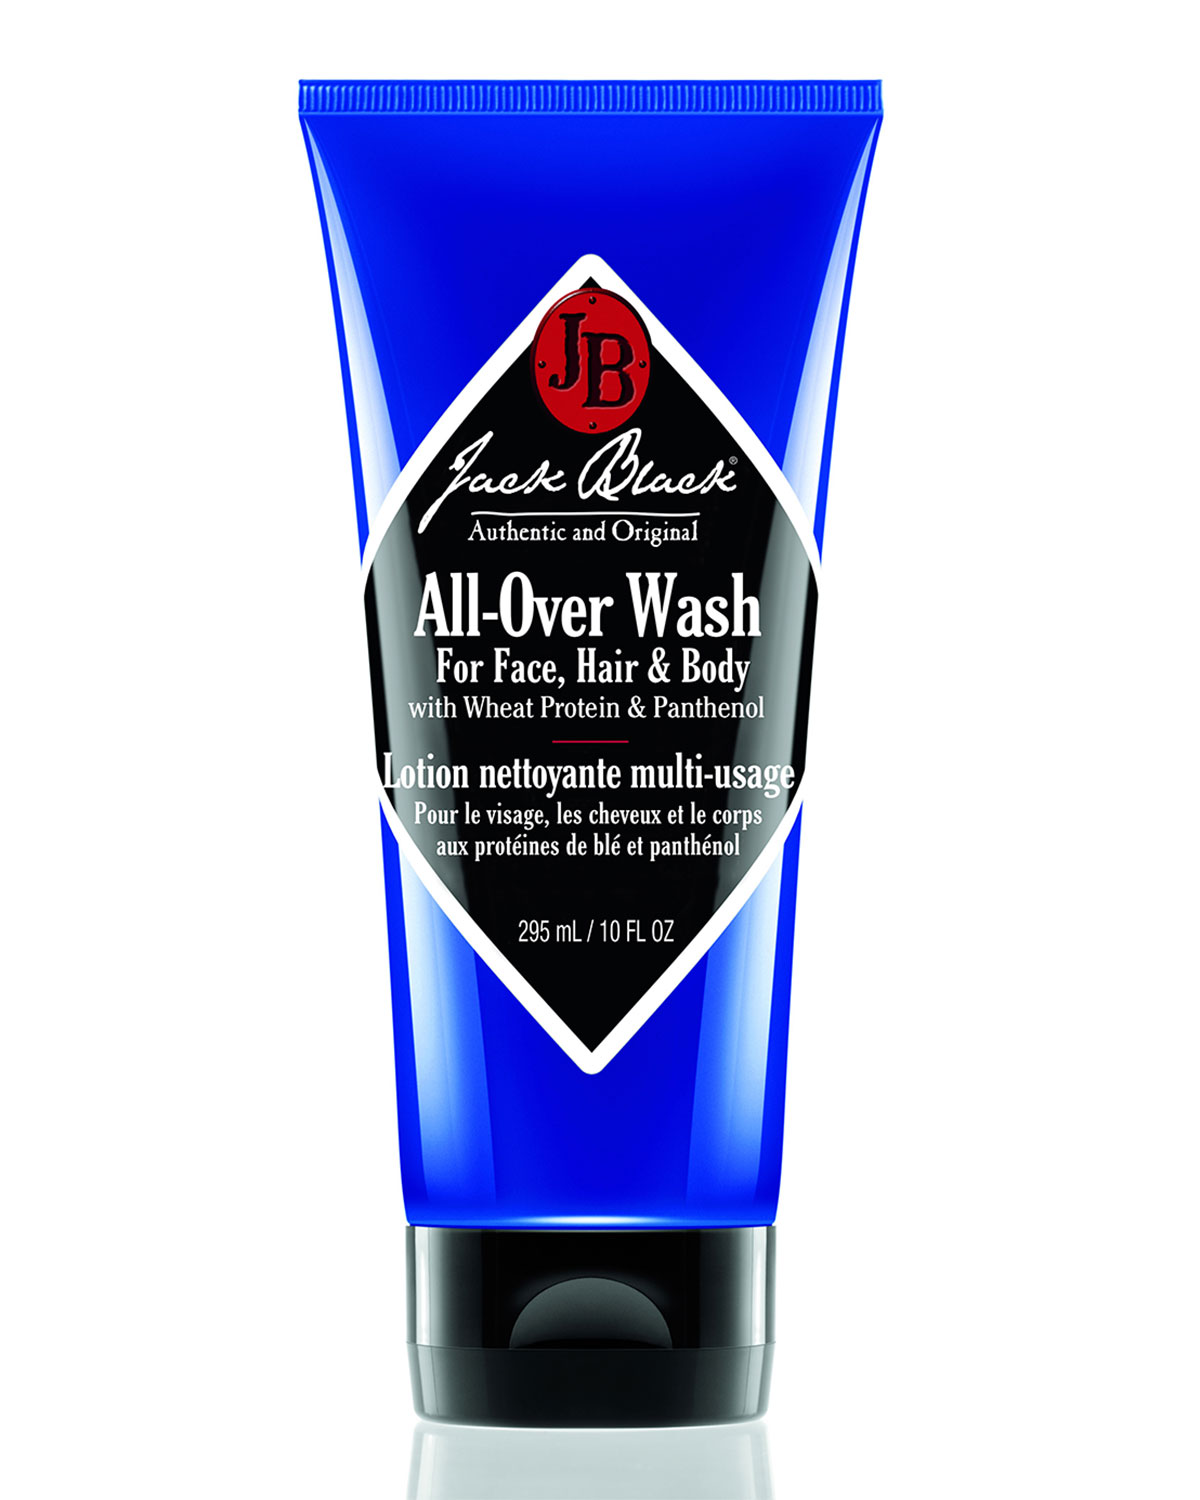 All-Over Wash for Face, Hair & Body, 33oz